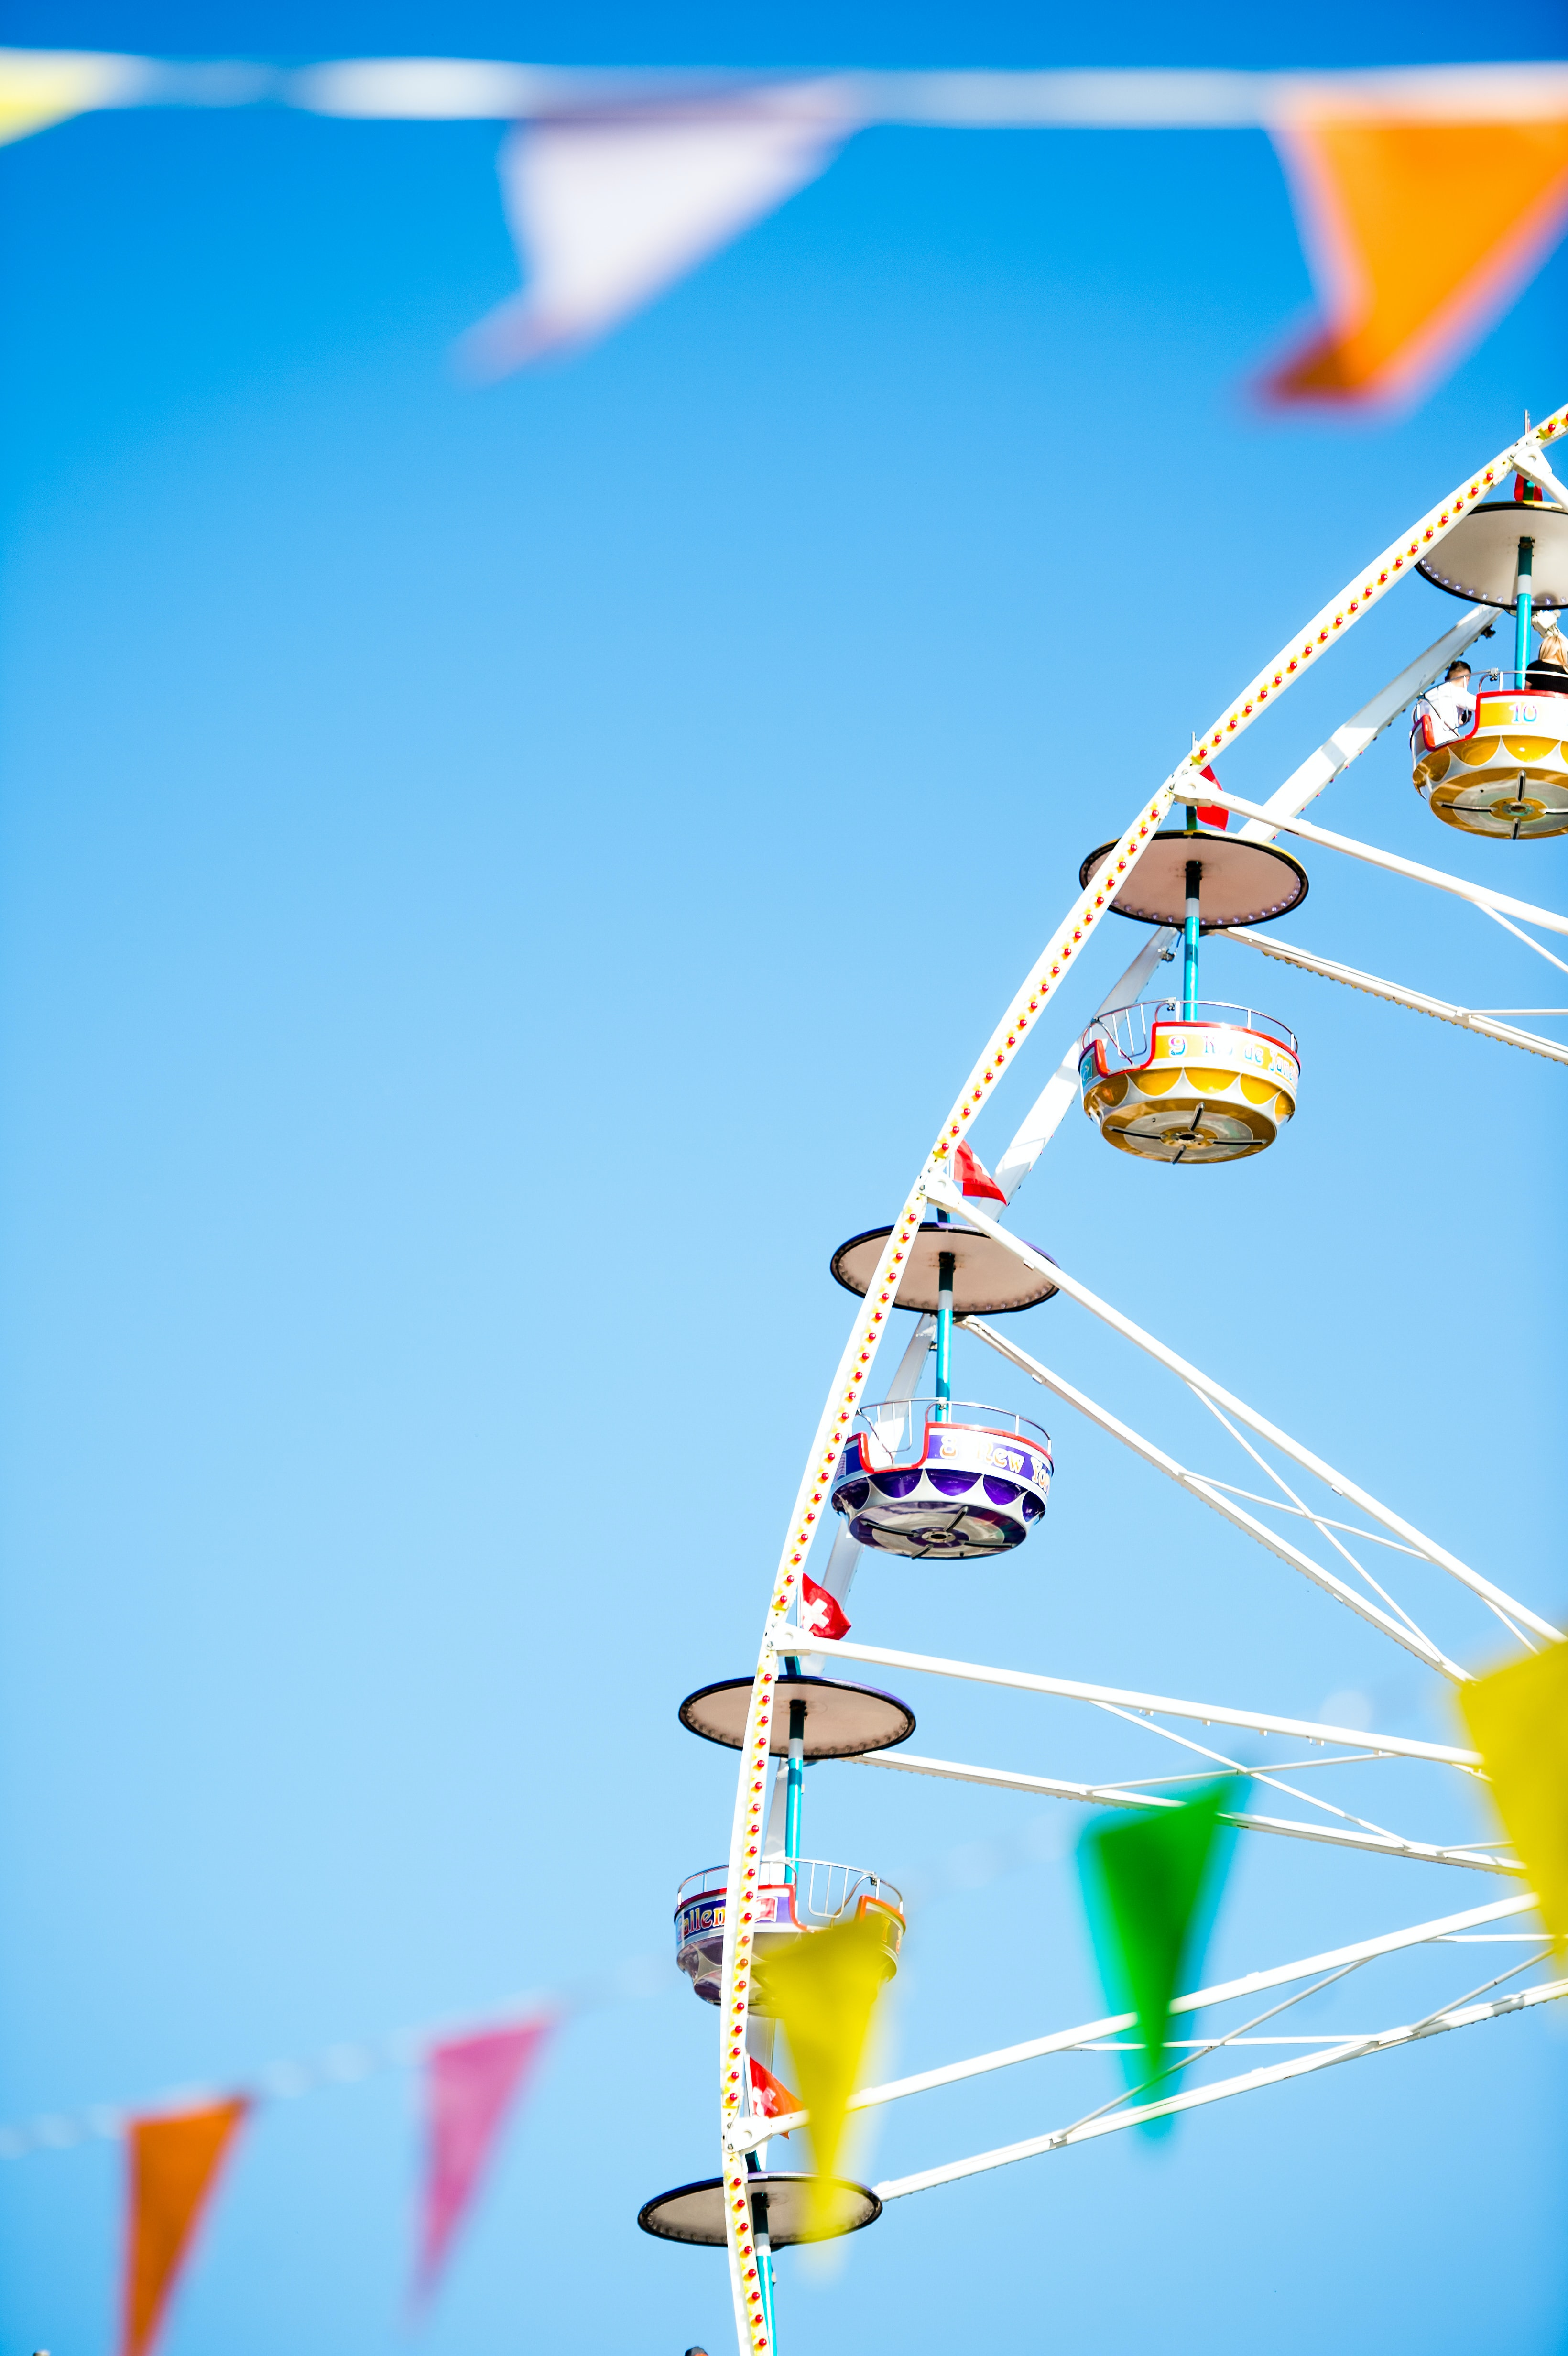 white and yellow Ferris wheel under blue skies photo